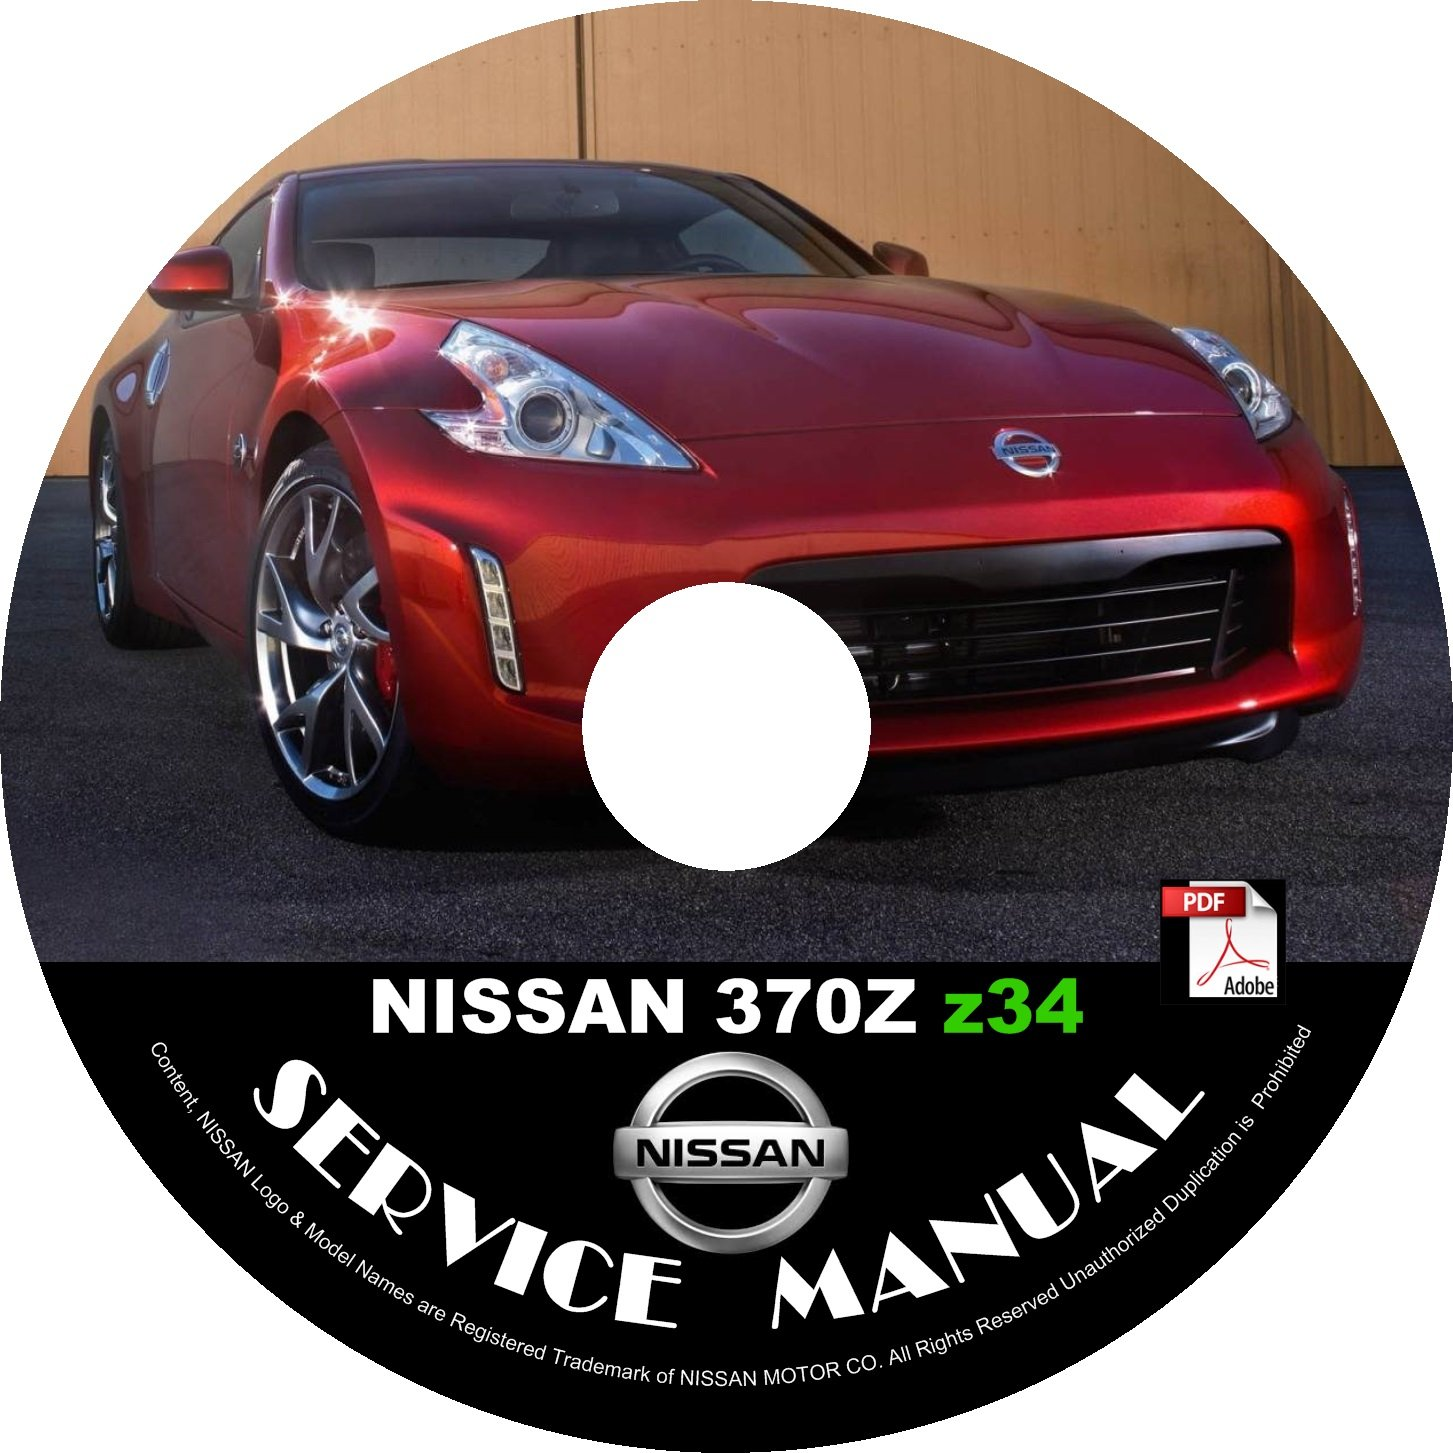 2015 Nissan 370Z Factory OEM Service Repair Shop Manual on CD